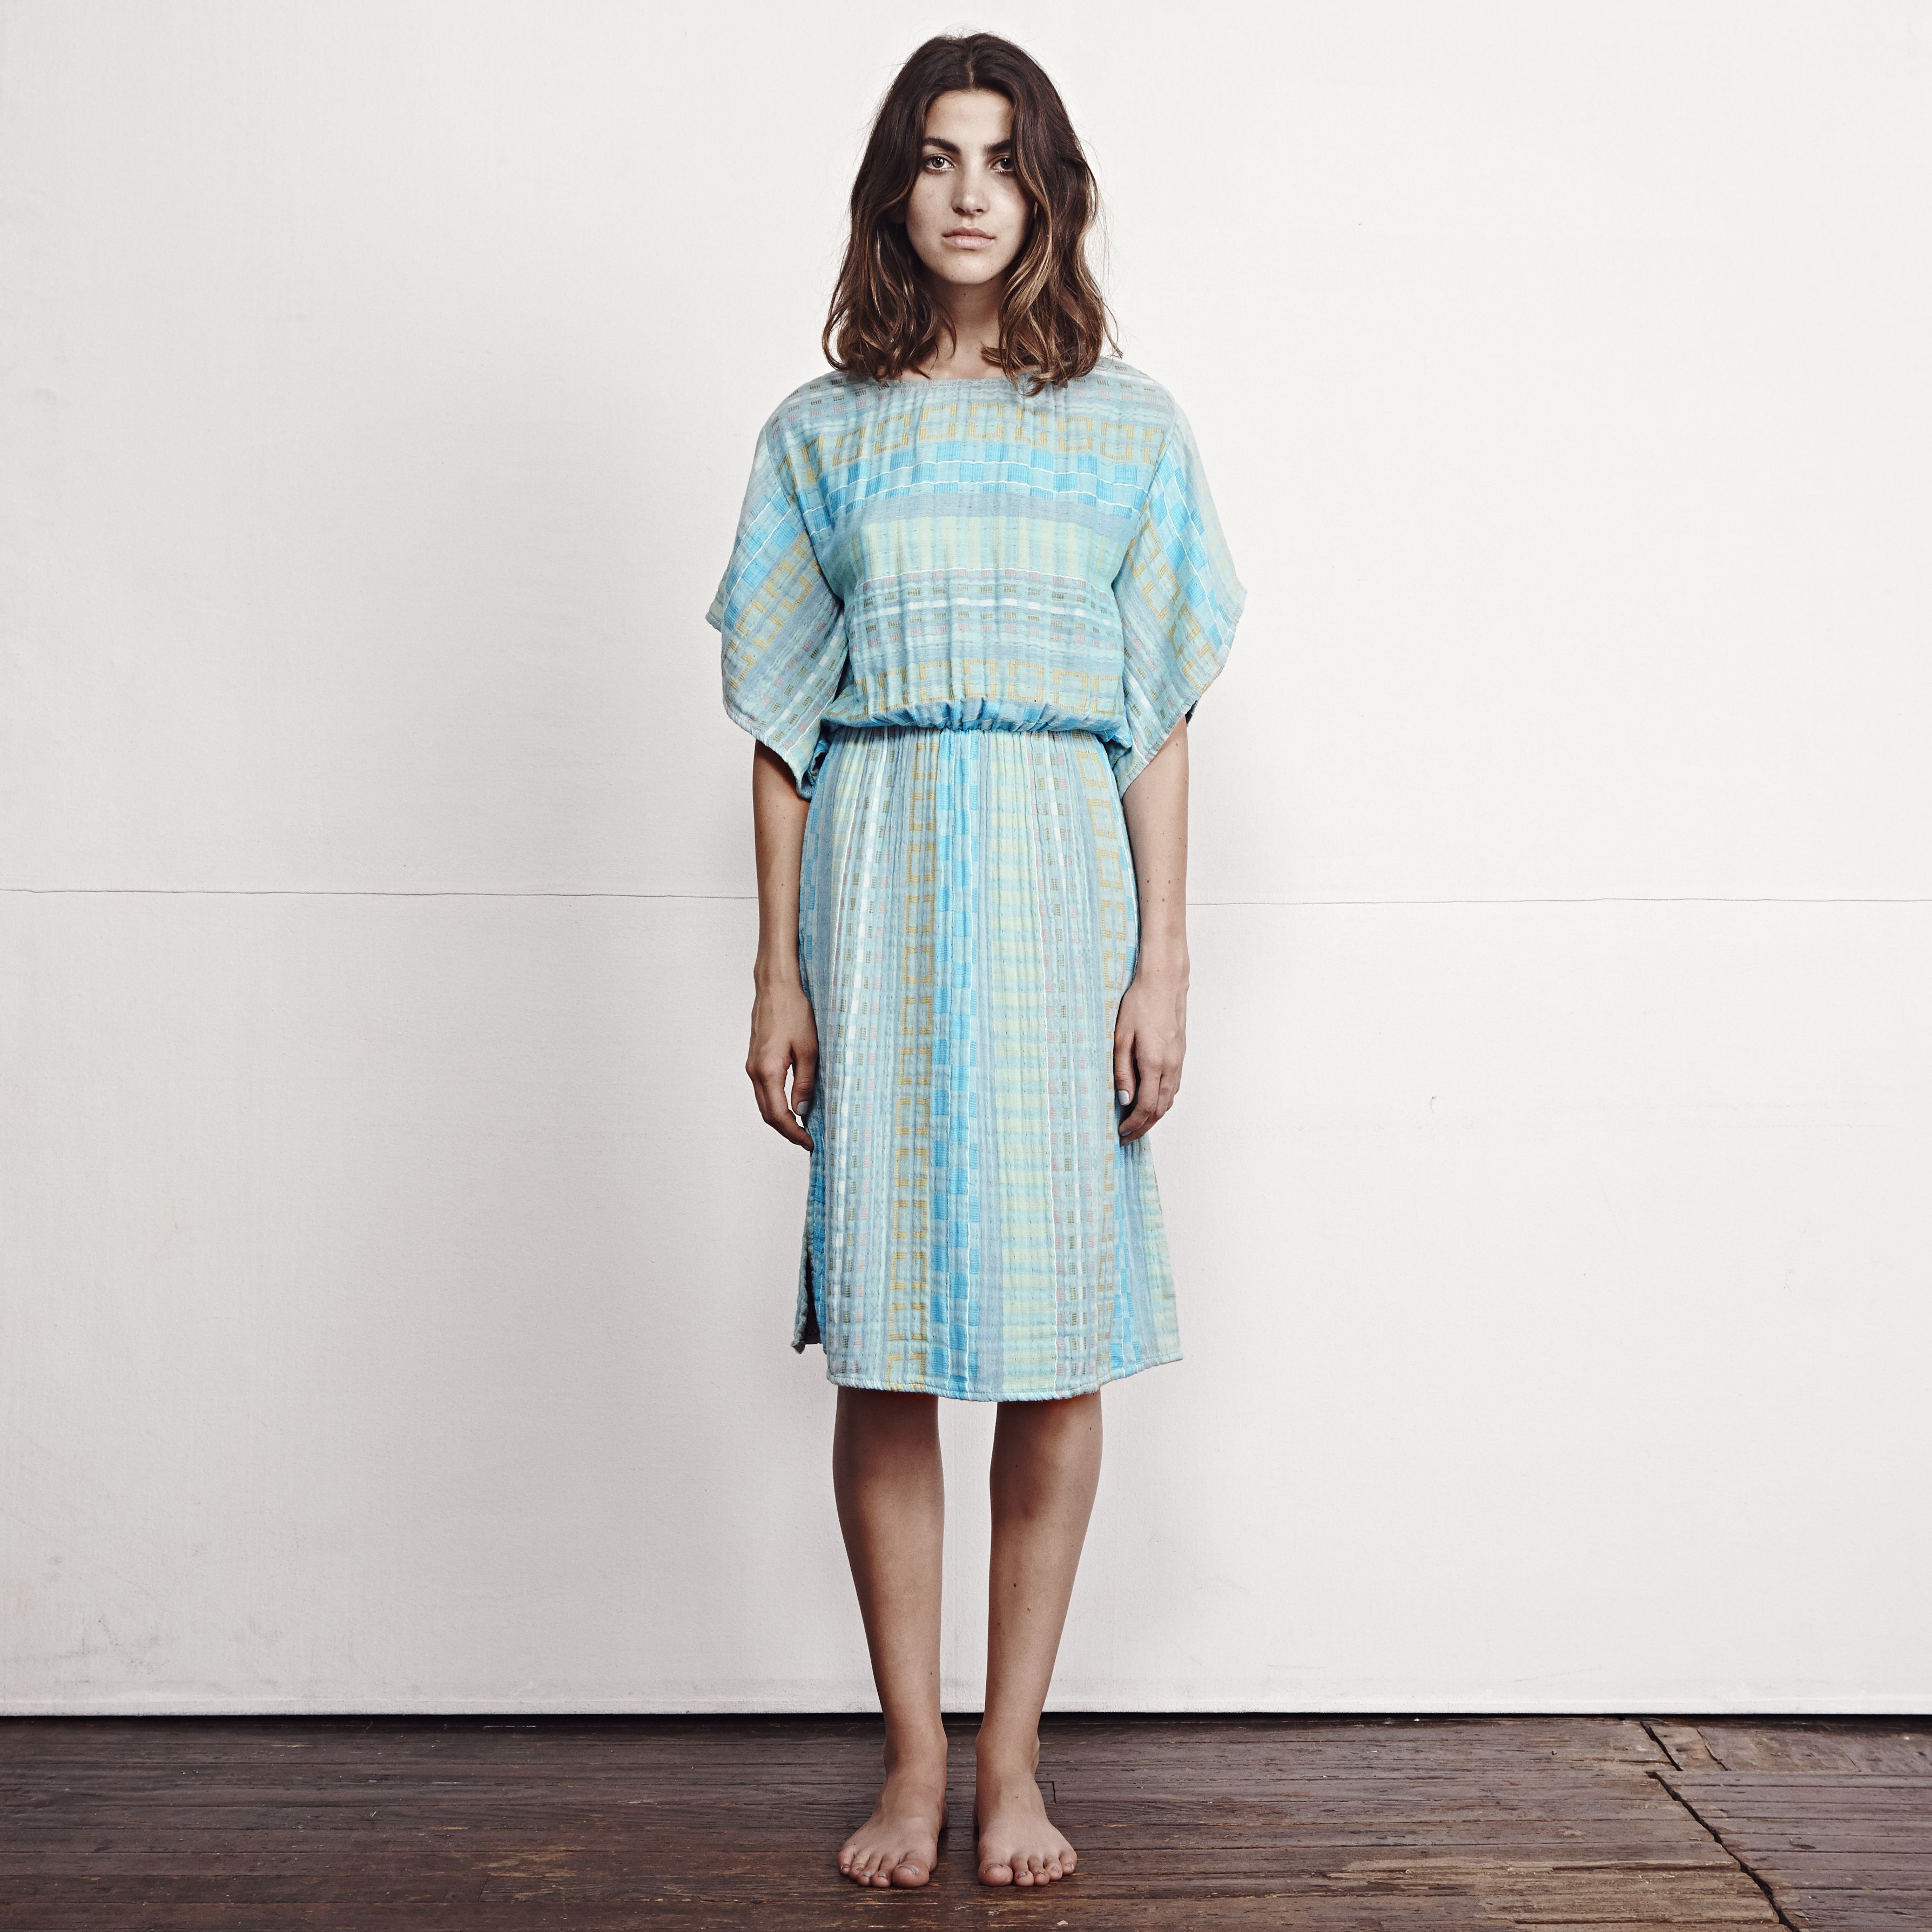 ace&jig Ray Dress in Isle | ACE&JIG SPRING15 COLLECTION ...